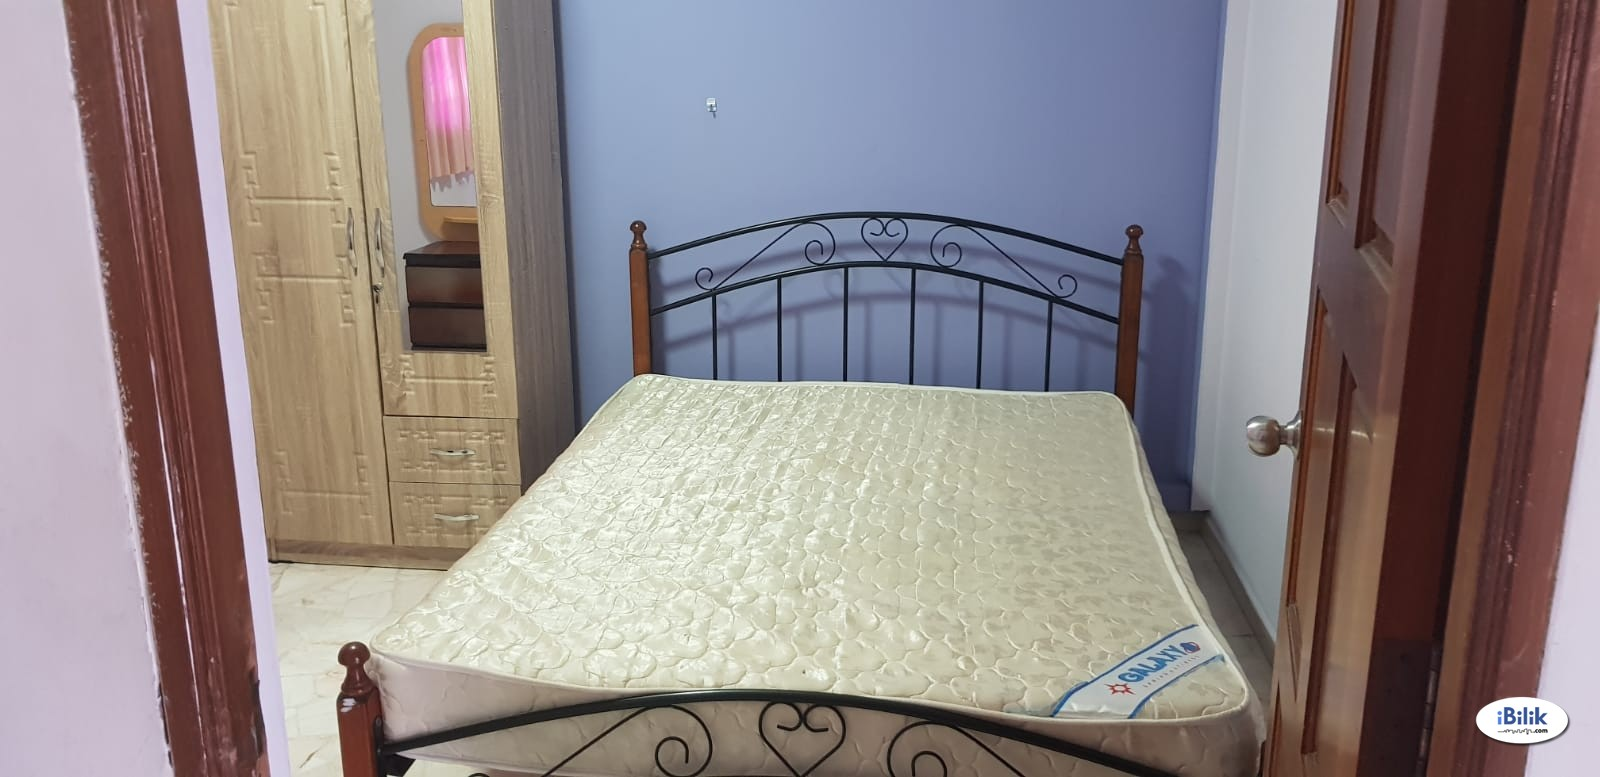 Master room at 807 woodlands street 81 for rent! Aircon wifi!